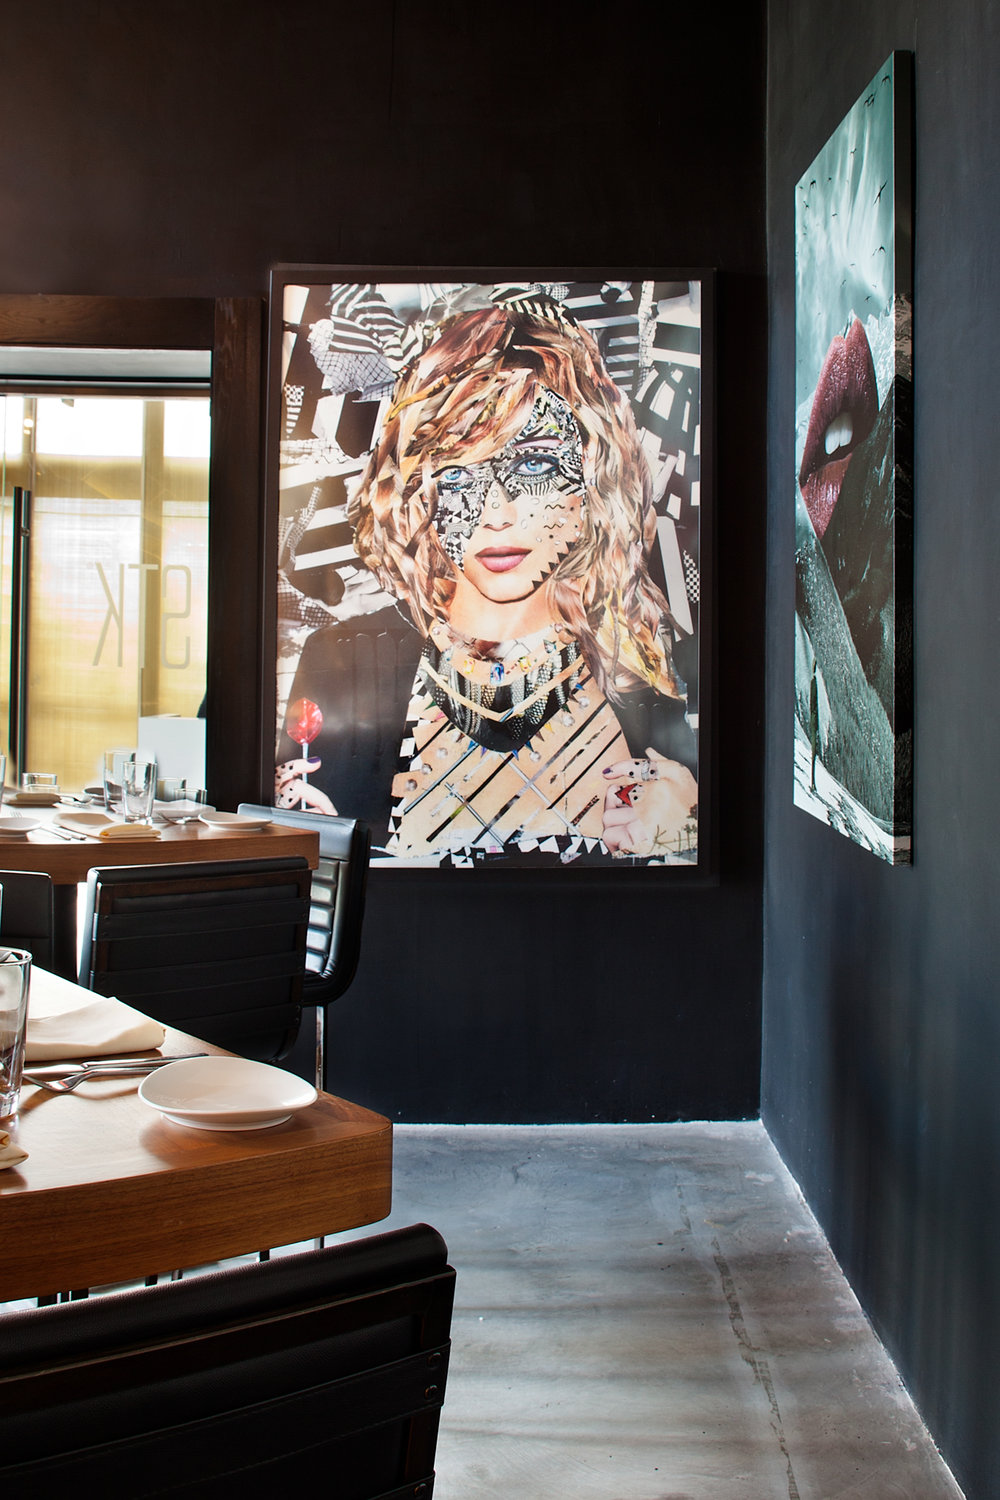 STK MIAMI - Curated by Indiewalls